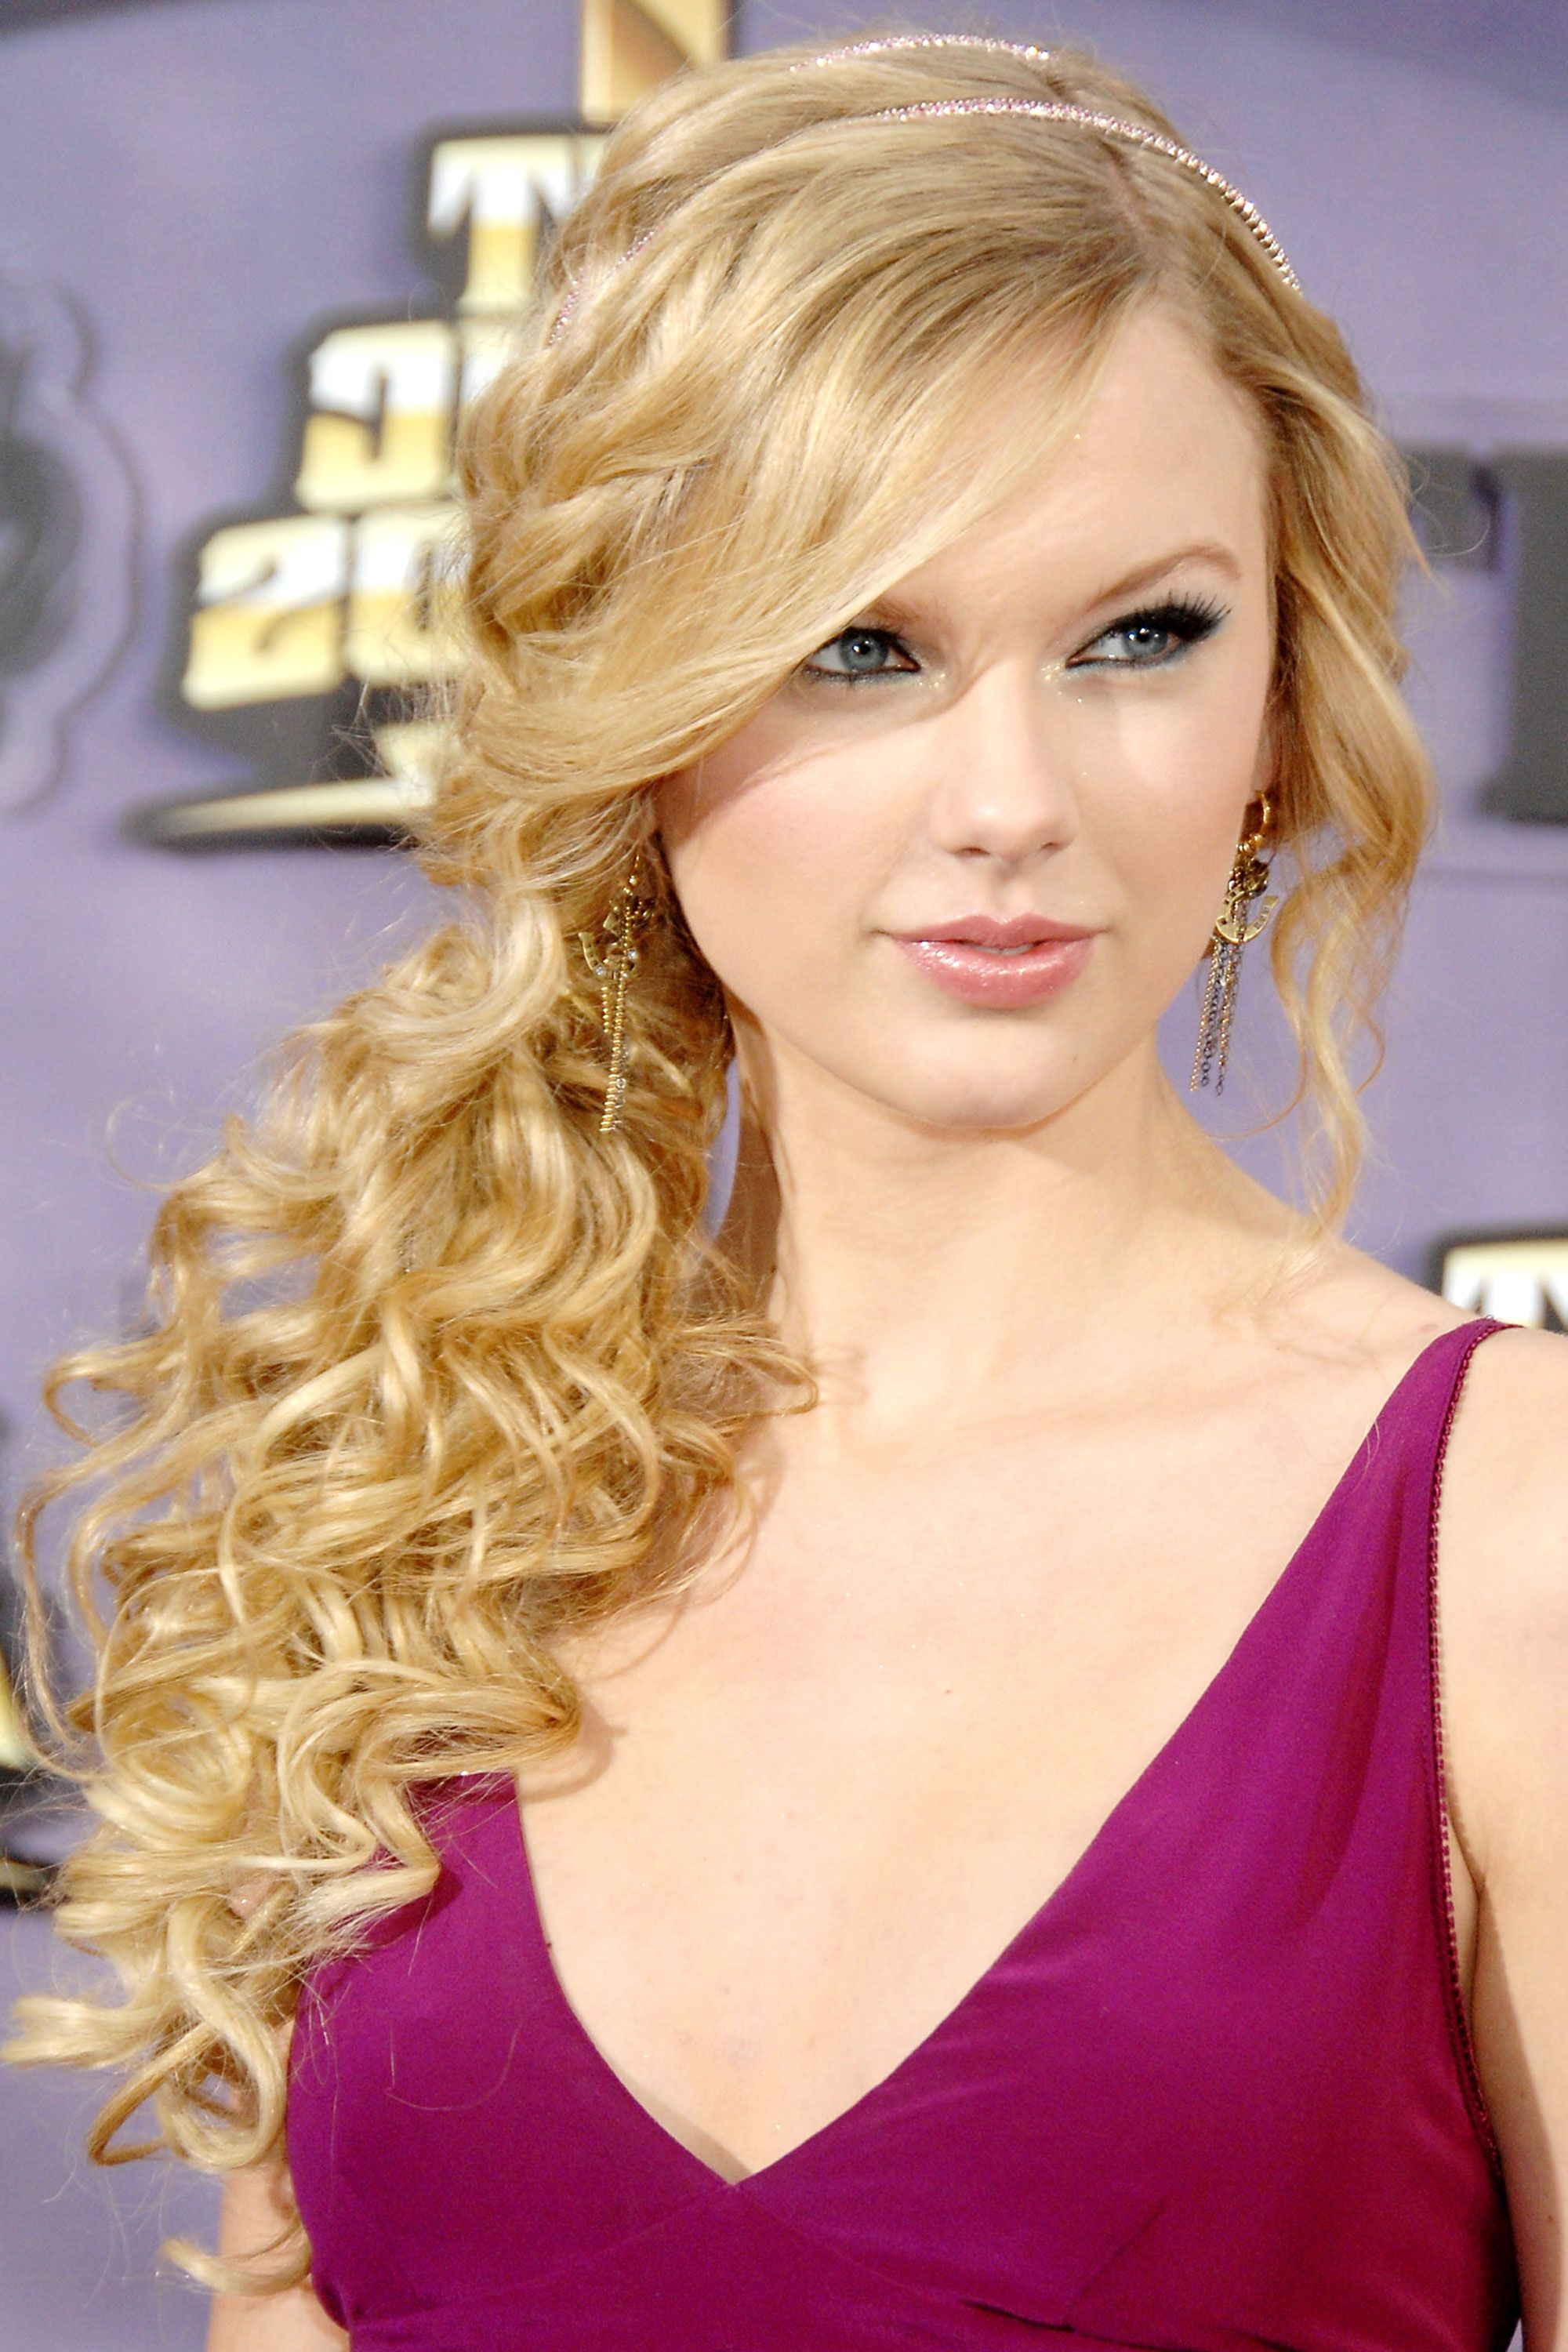 Taylor Swift Hairstyles – Taylor Swift's Curly, Straight, Short Throughout Widely Used Taylor Swift Medium Hairstyles (View 12 of 20)